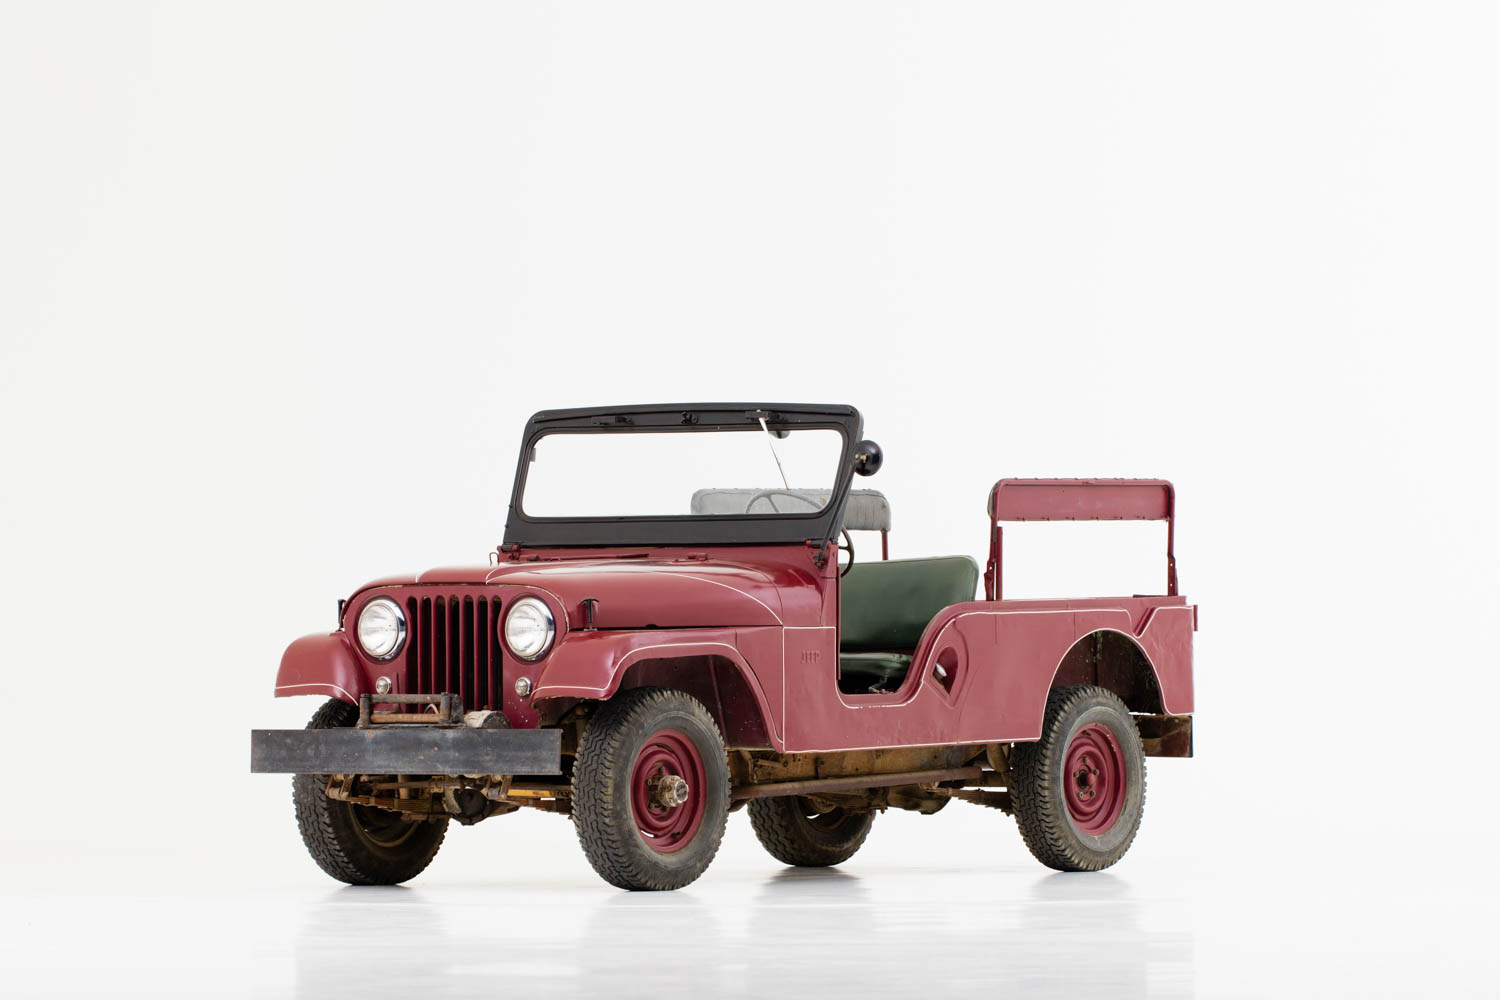 President Reagan's 1962 Willys Jeep CJ-6